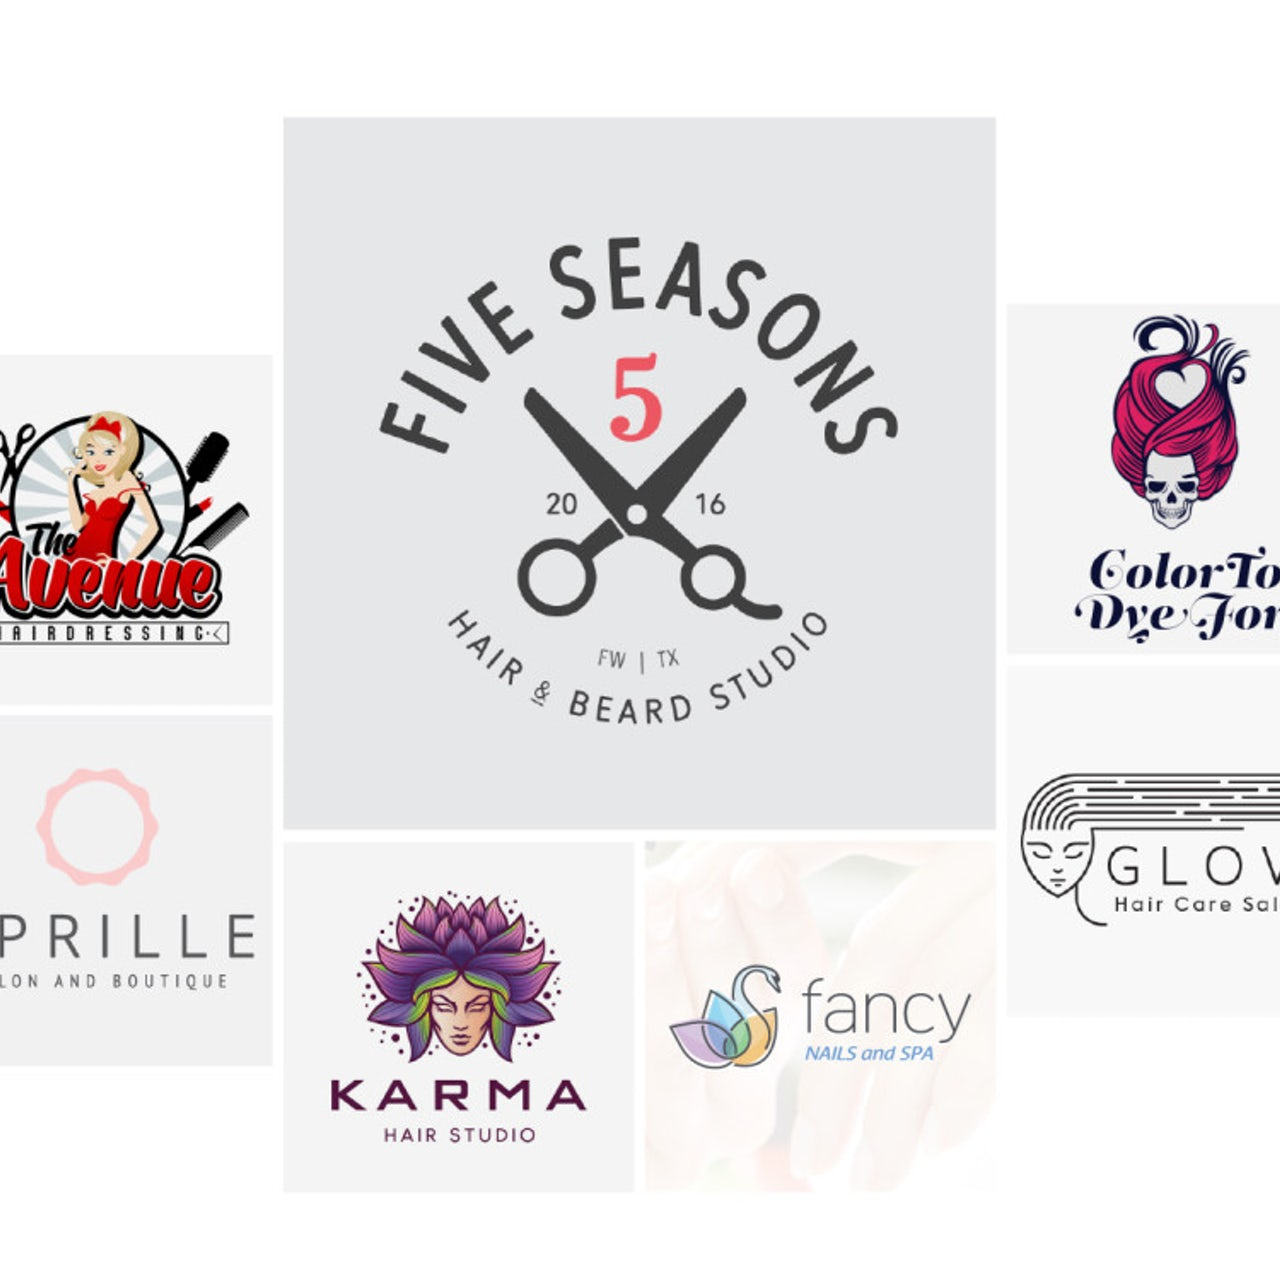 17 salon, stylist & hairdresser logos that will make you look your